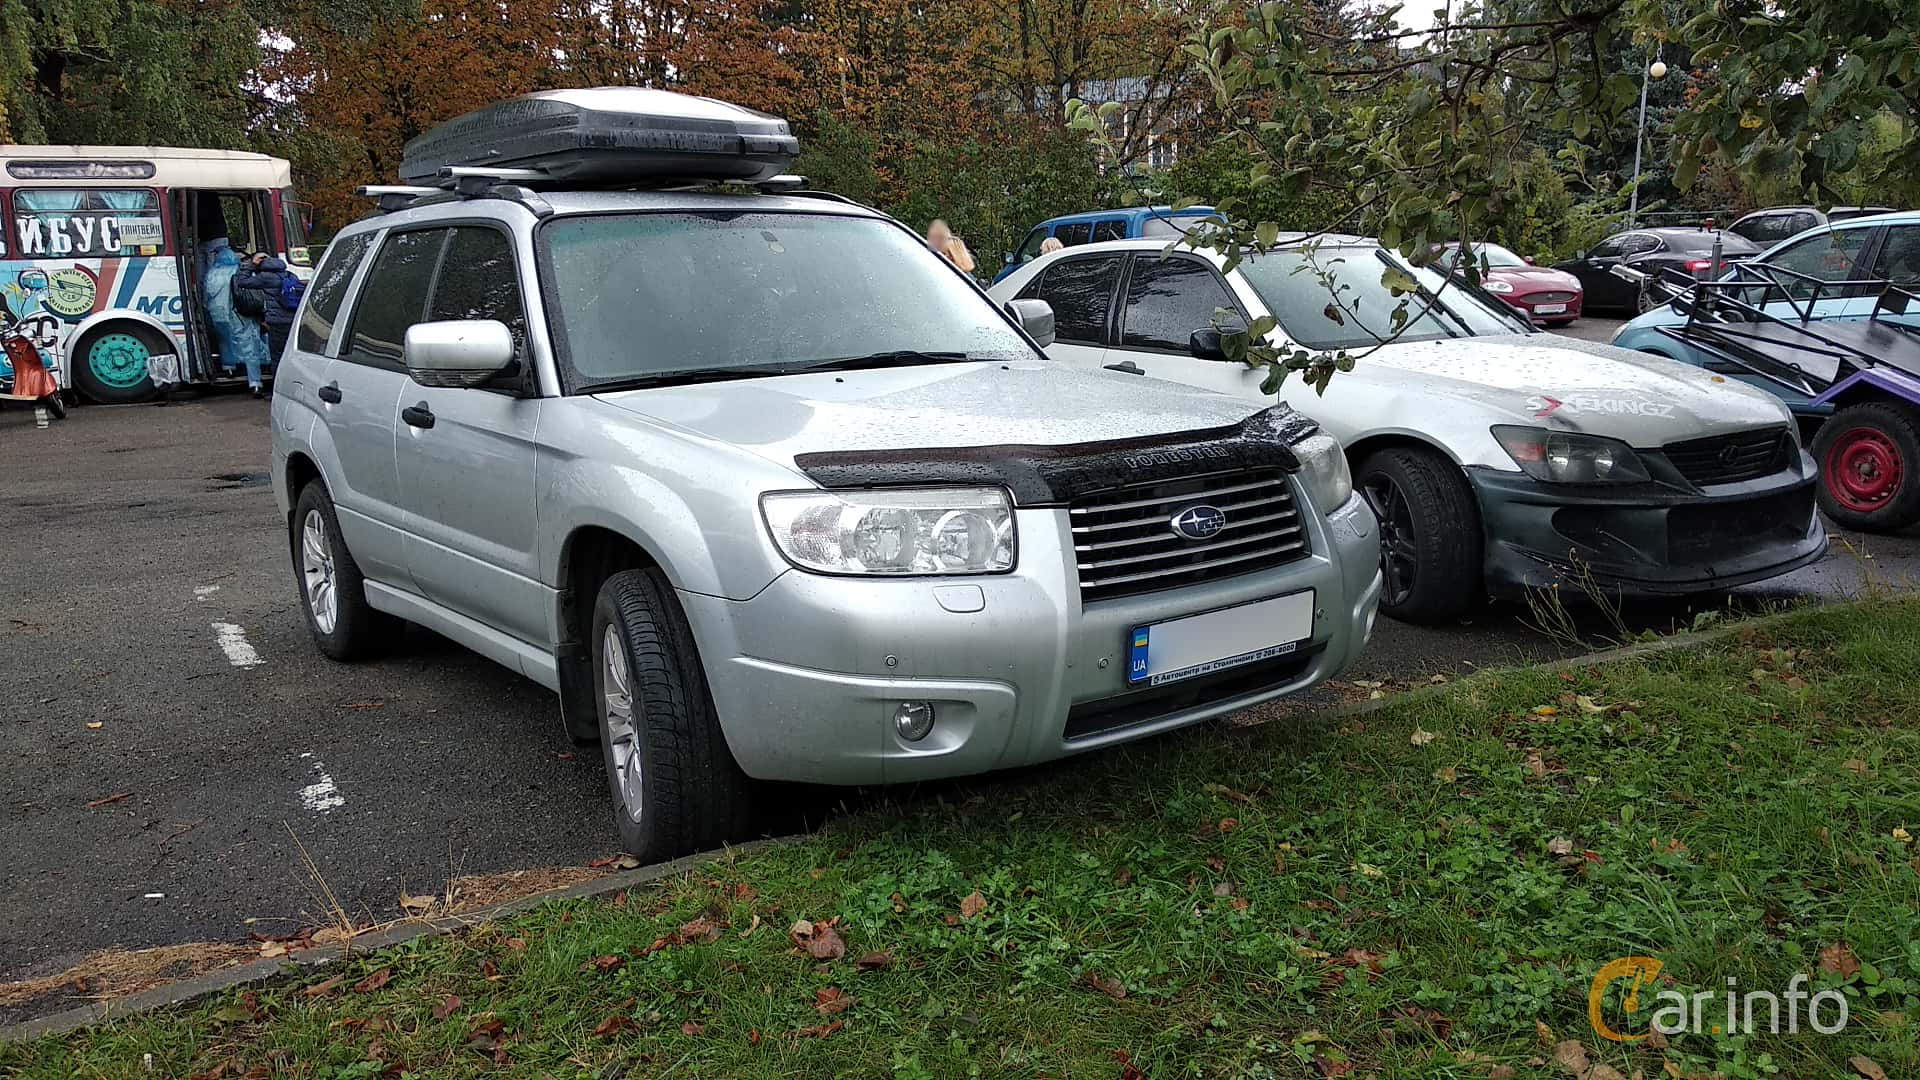 Front/Side of Subaru Forester 2006 at Old Car Land no 2 2018